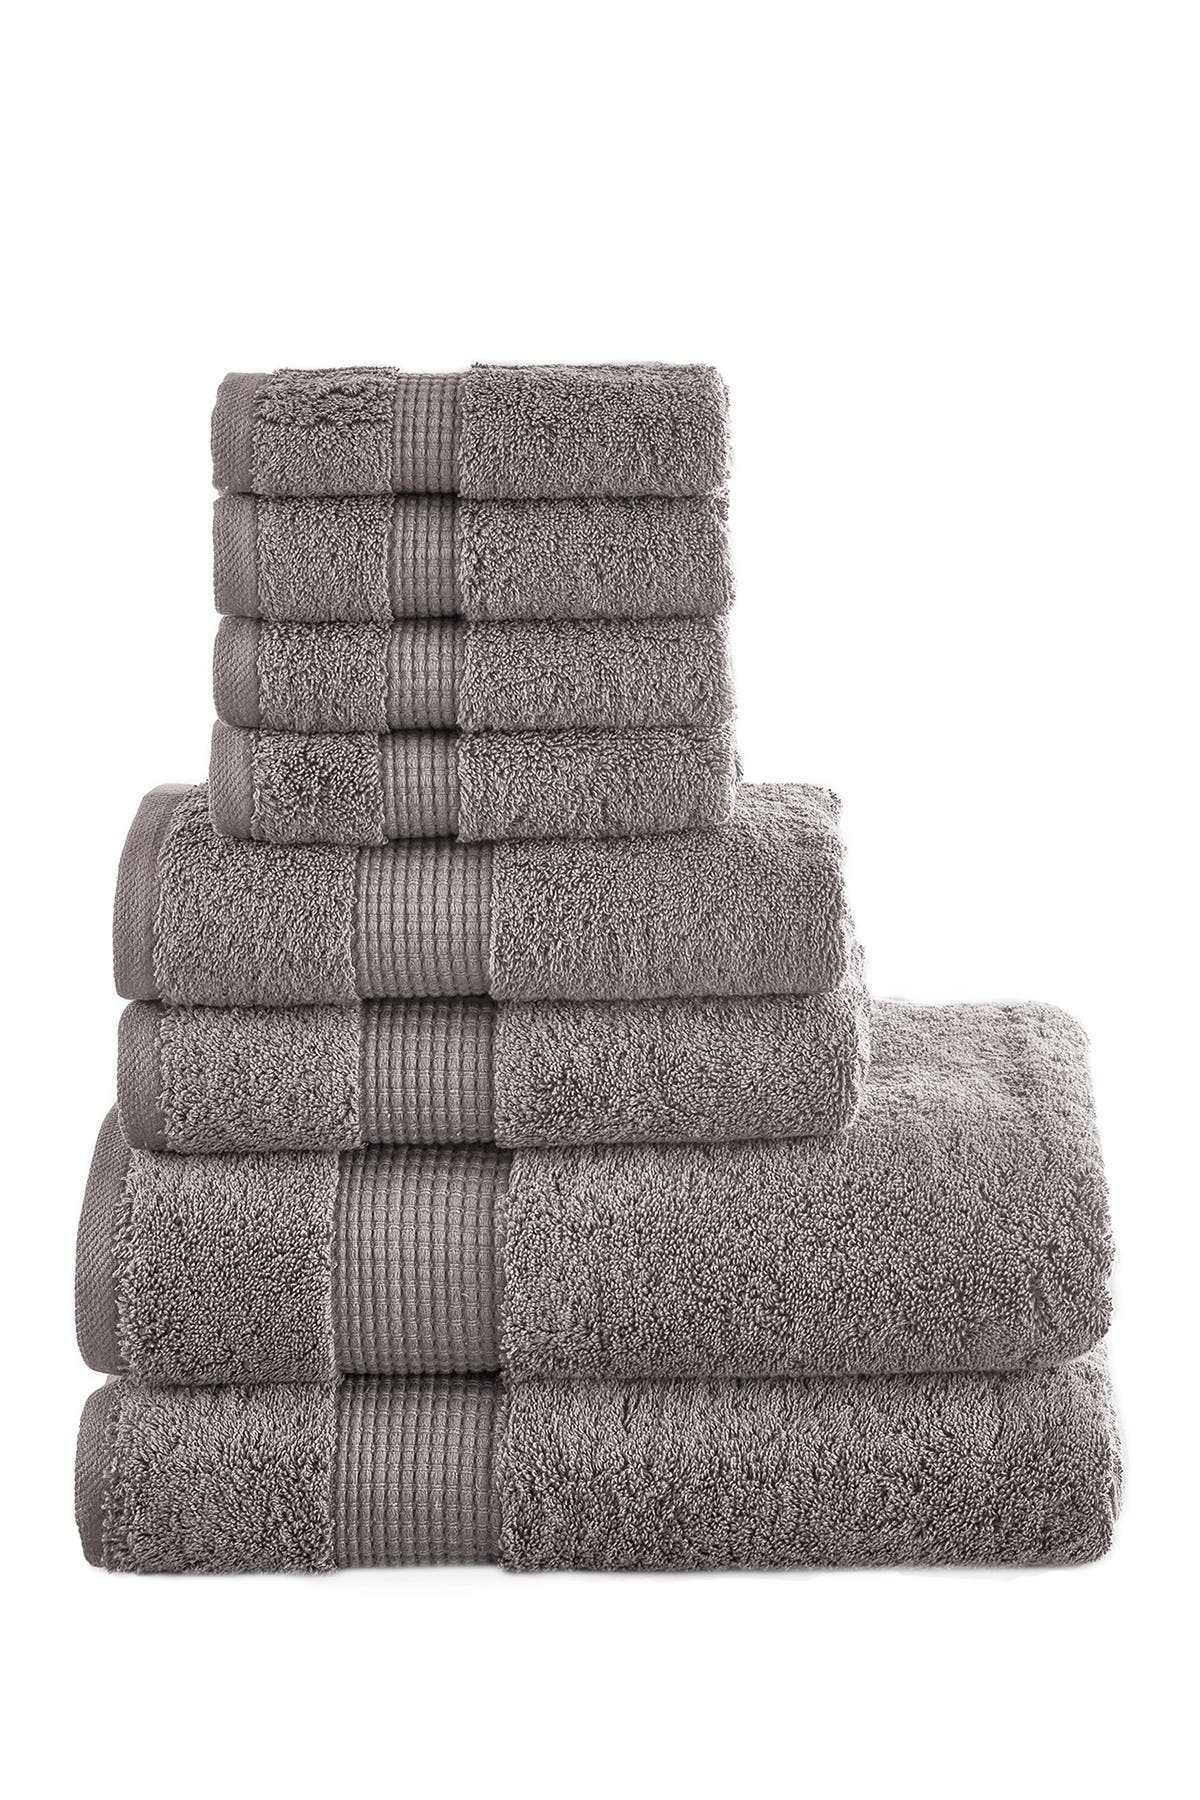 Image of Modern Threads Manor Ridge Turkish Cotton 700 GSM 8-Piece Towel Set - Taupe